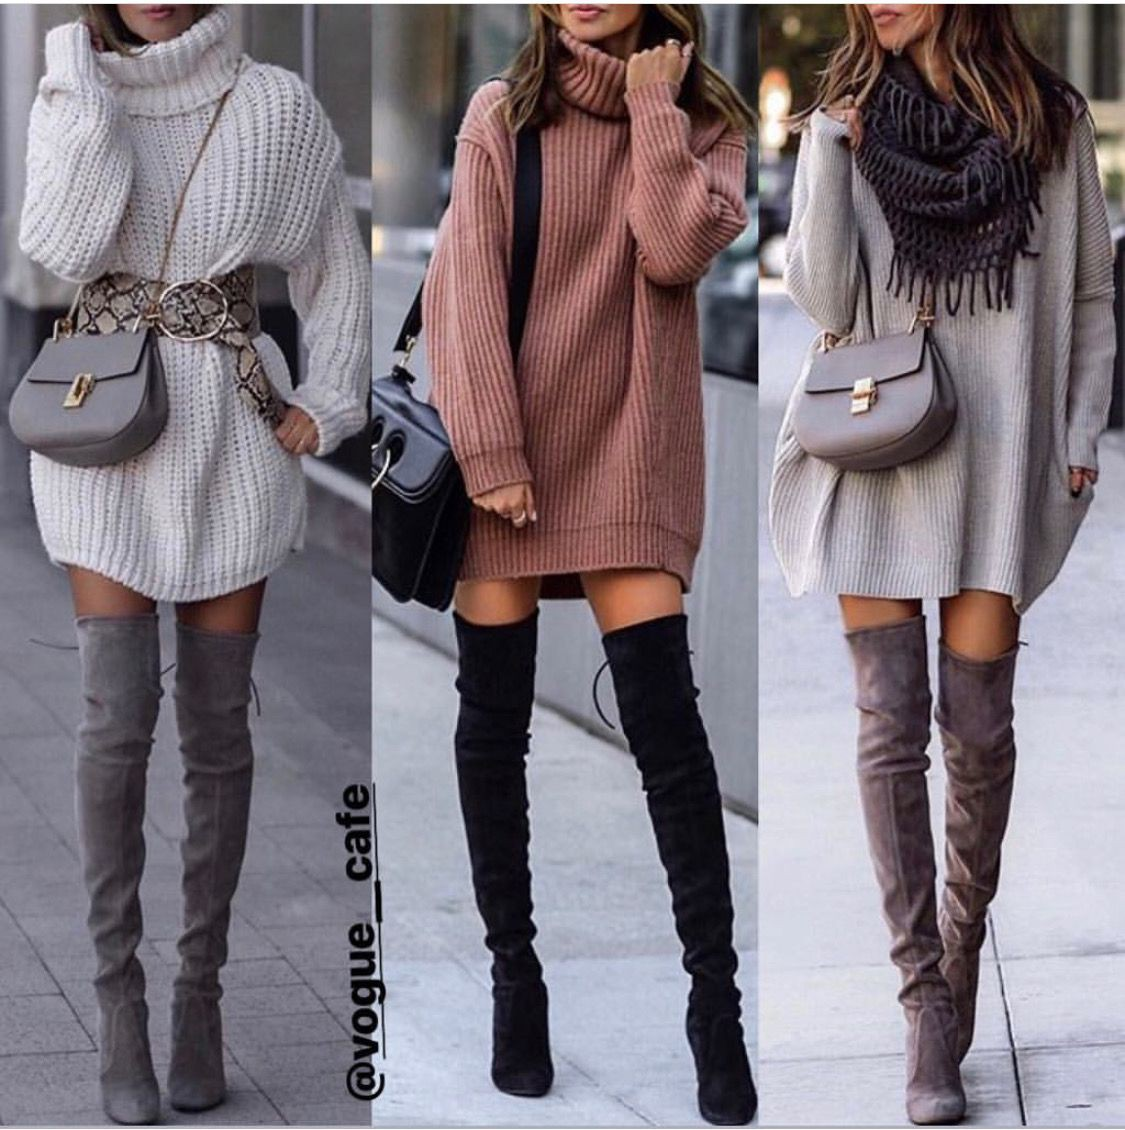 Designer outfit with sweater